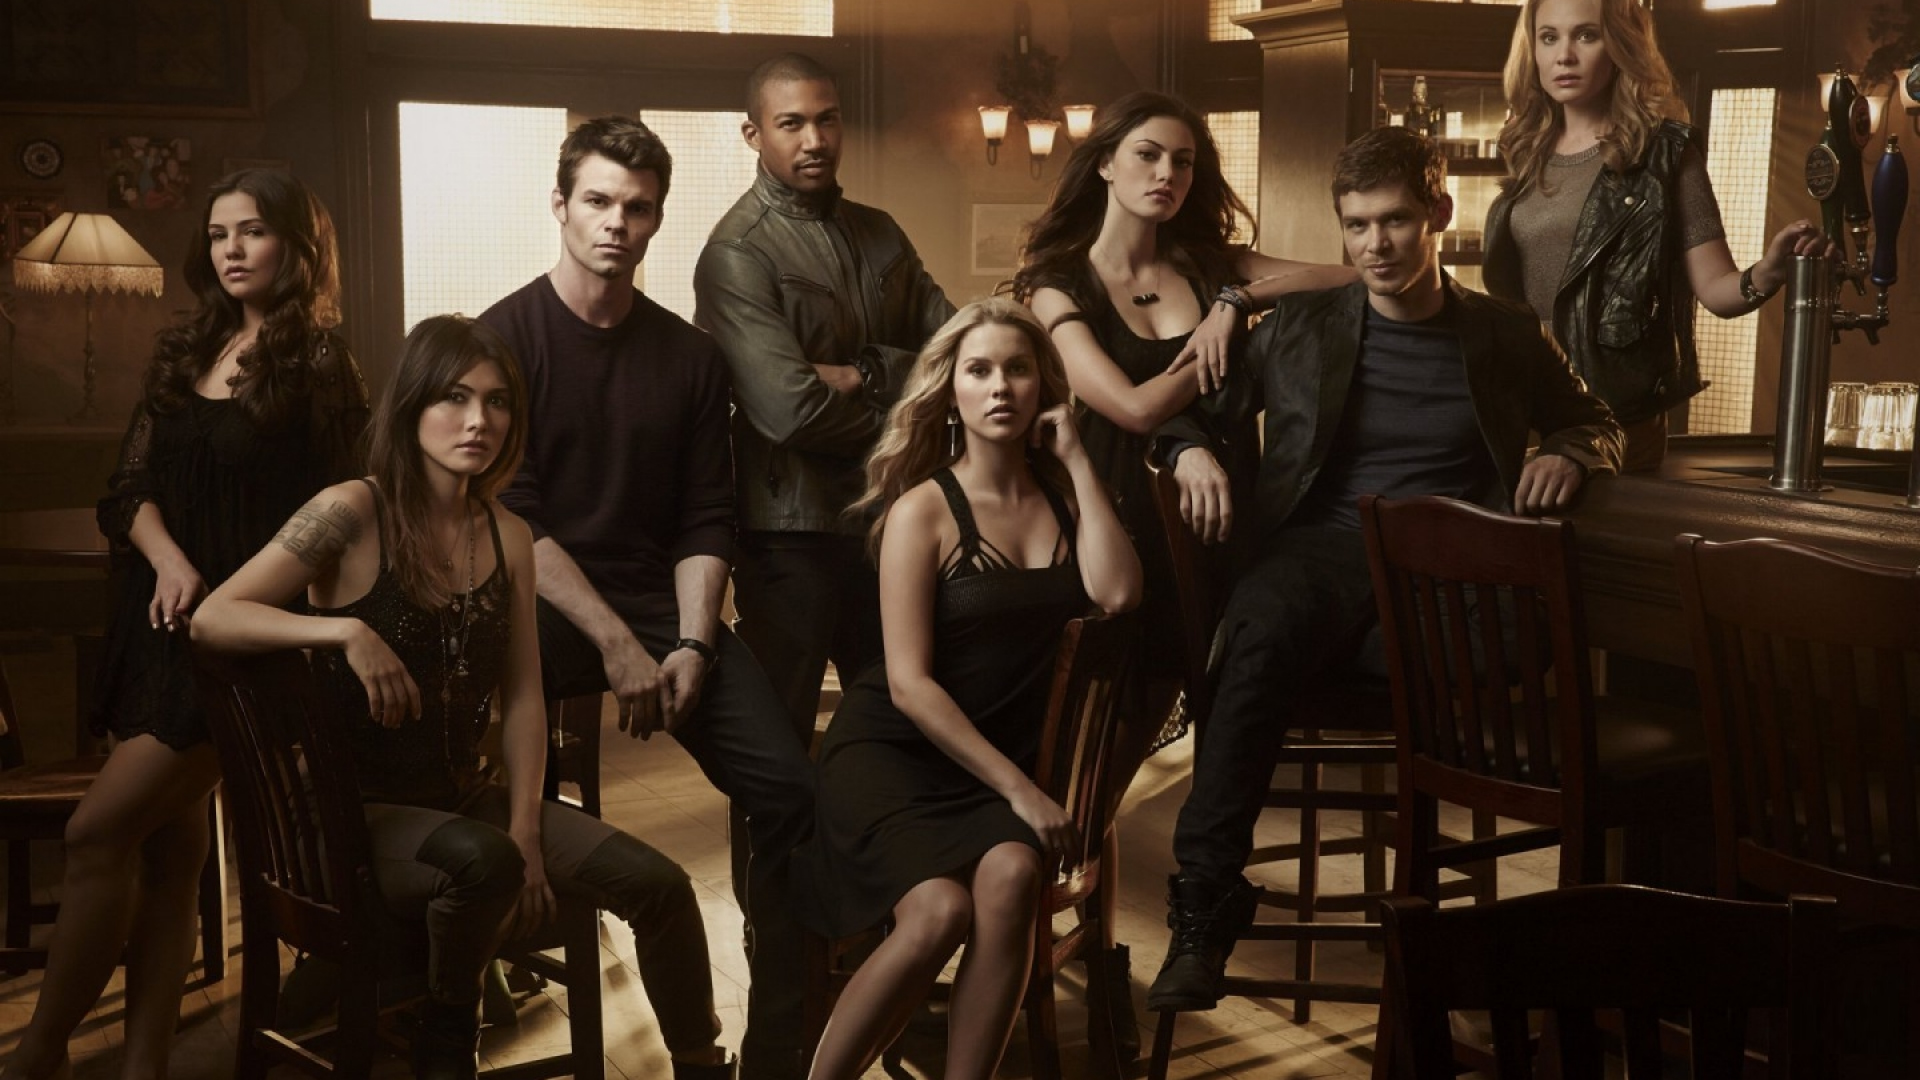 The Originals Cw Wallpaper Wallpapersafari